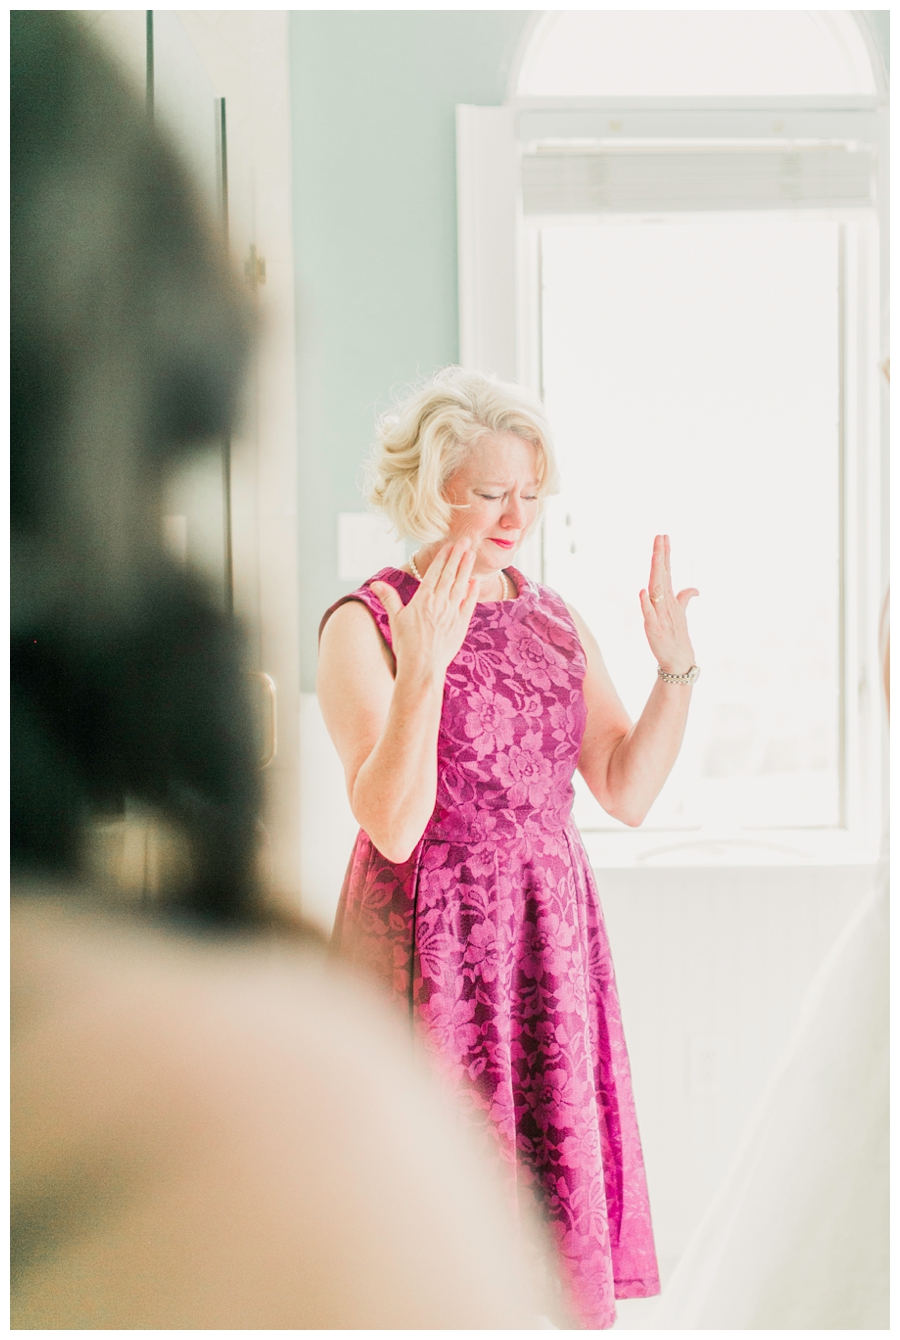 Light and Airy Photos of the bride in front of a window_0013.jpg